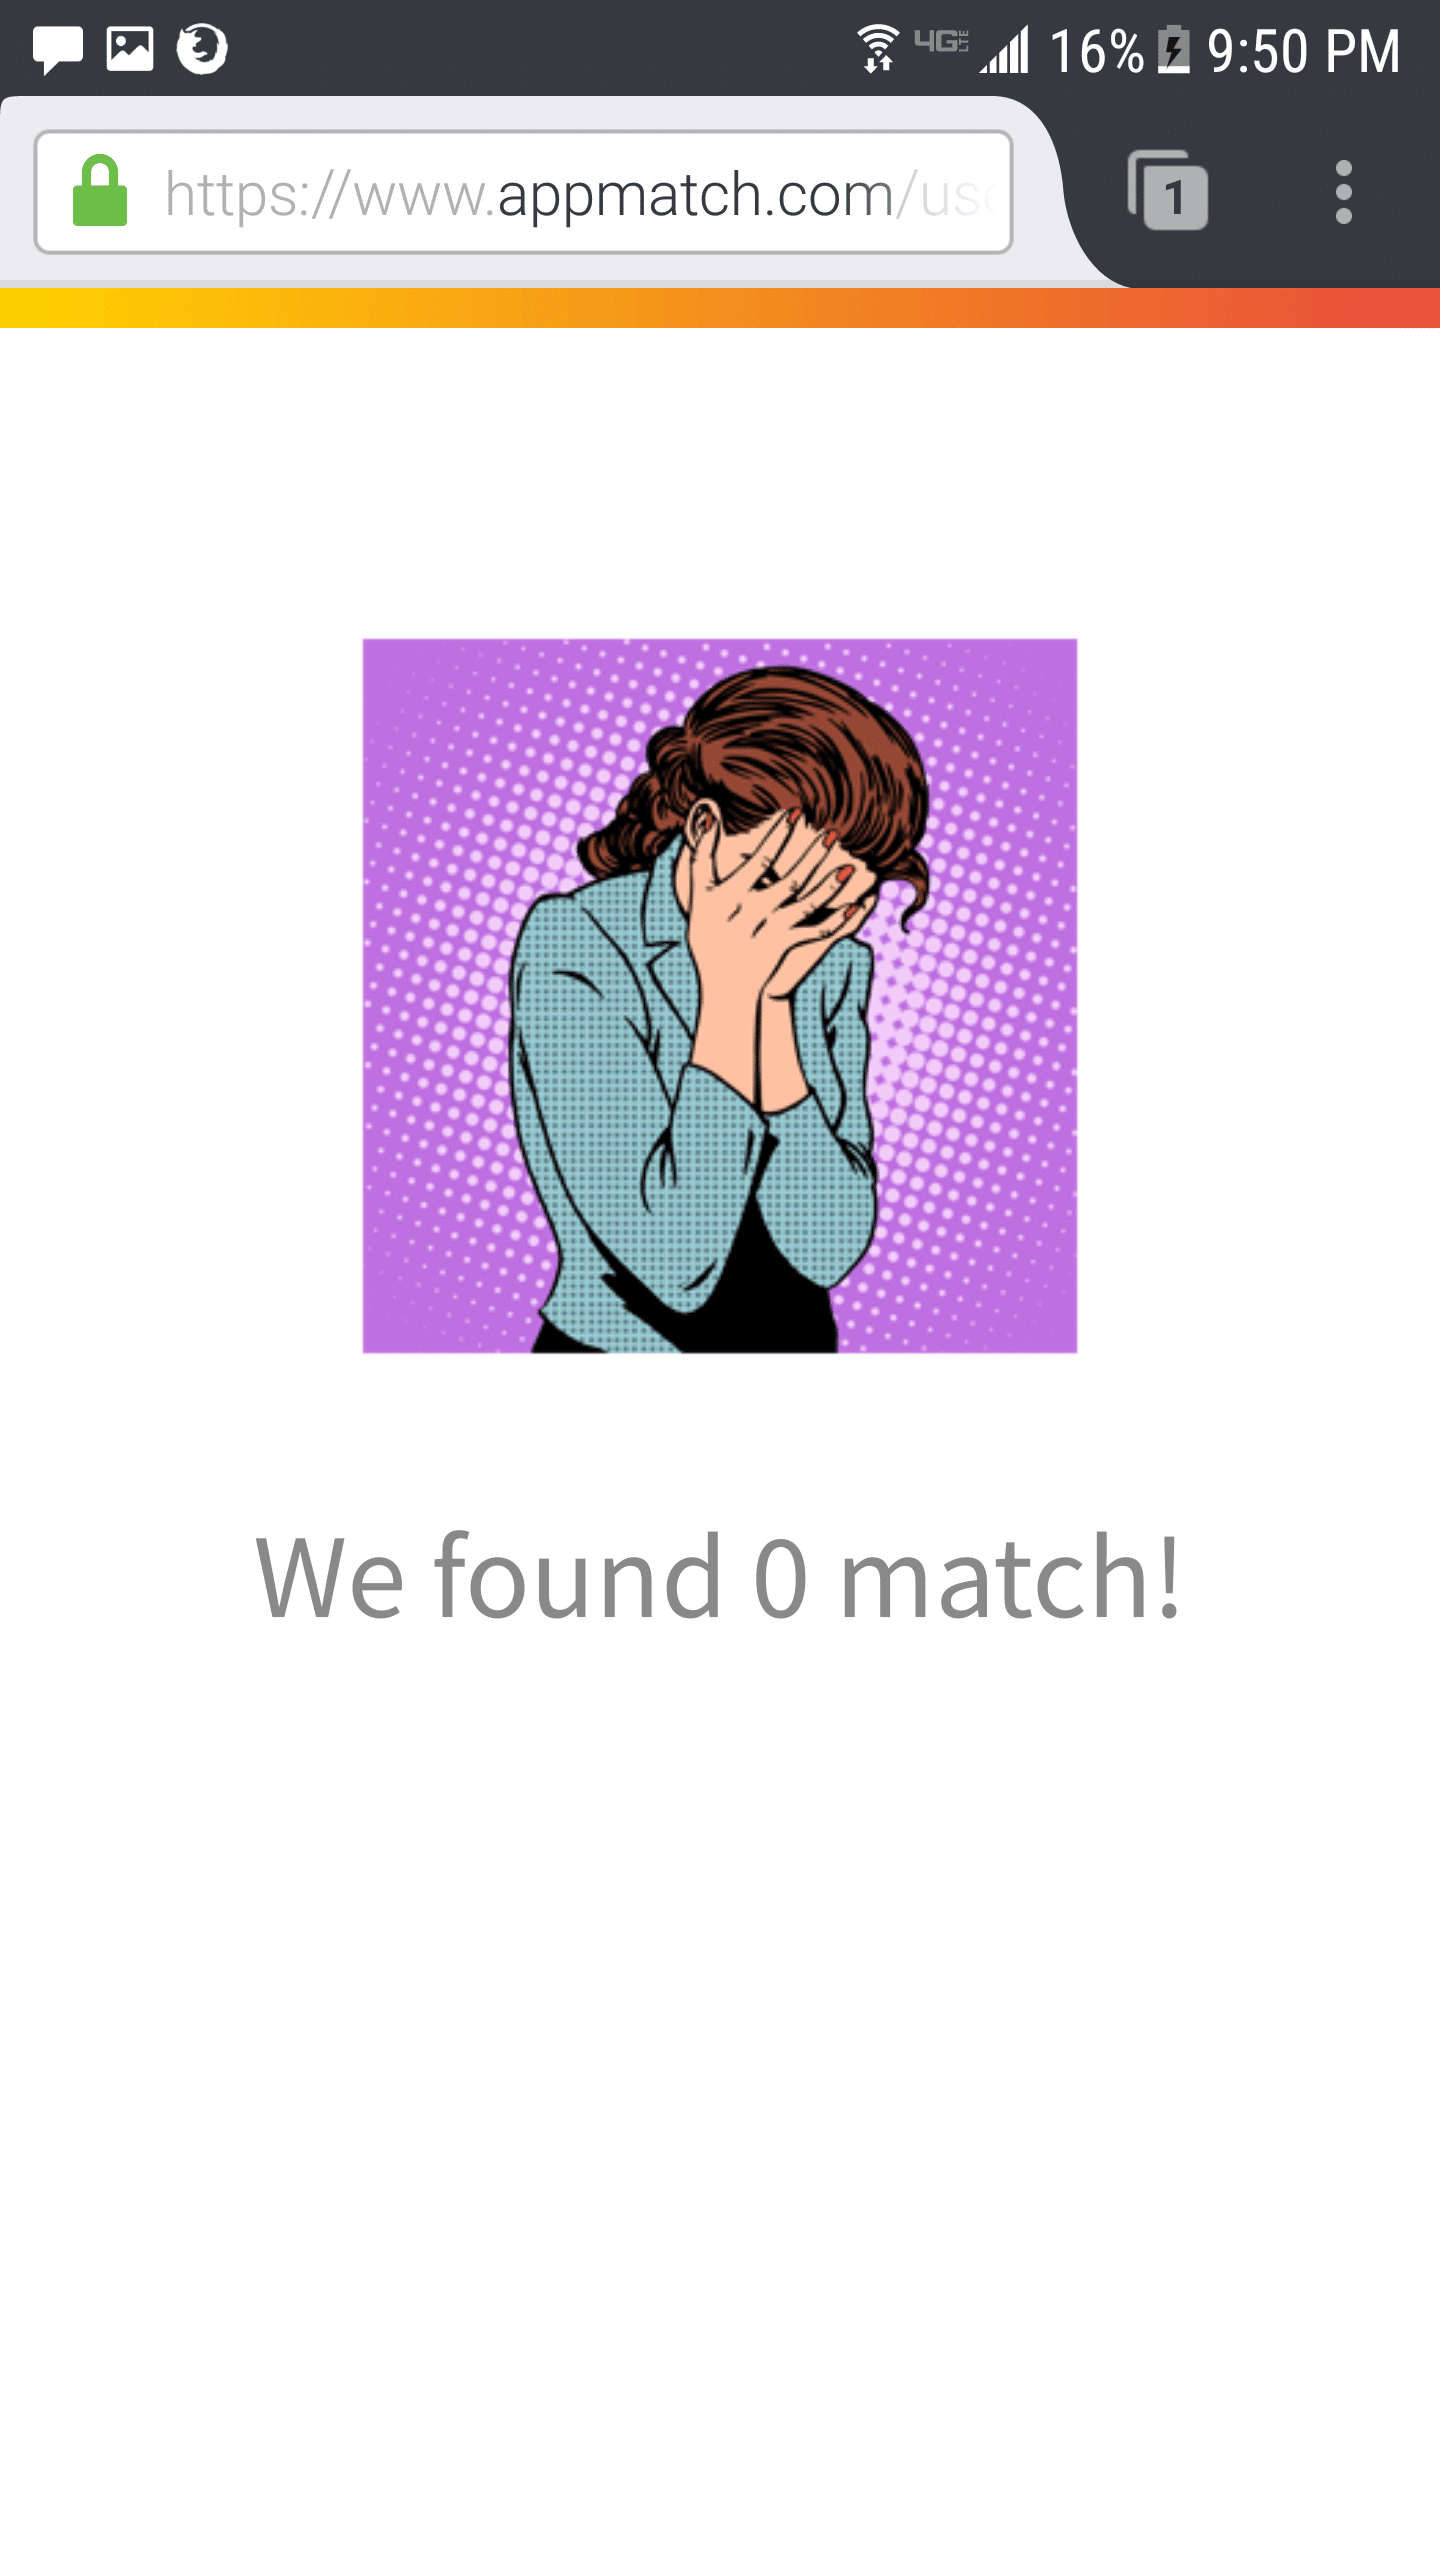 AppMatch Review - Zero Matches